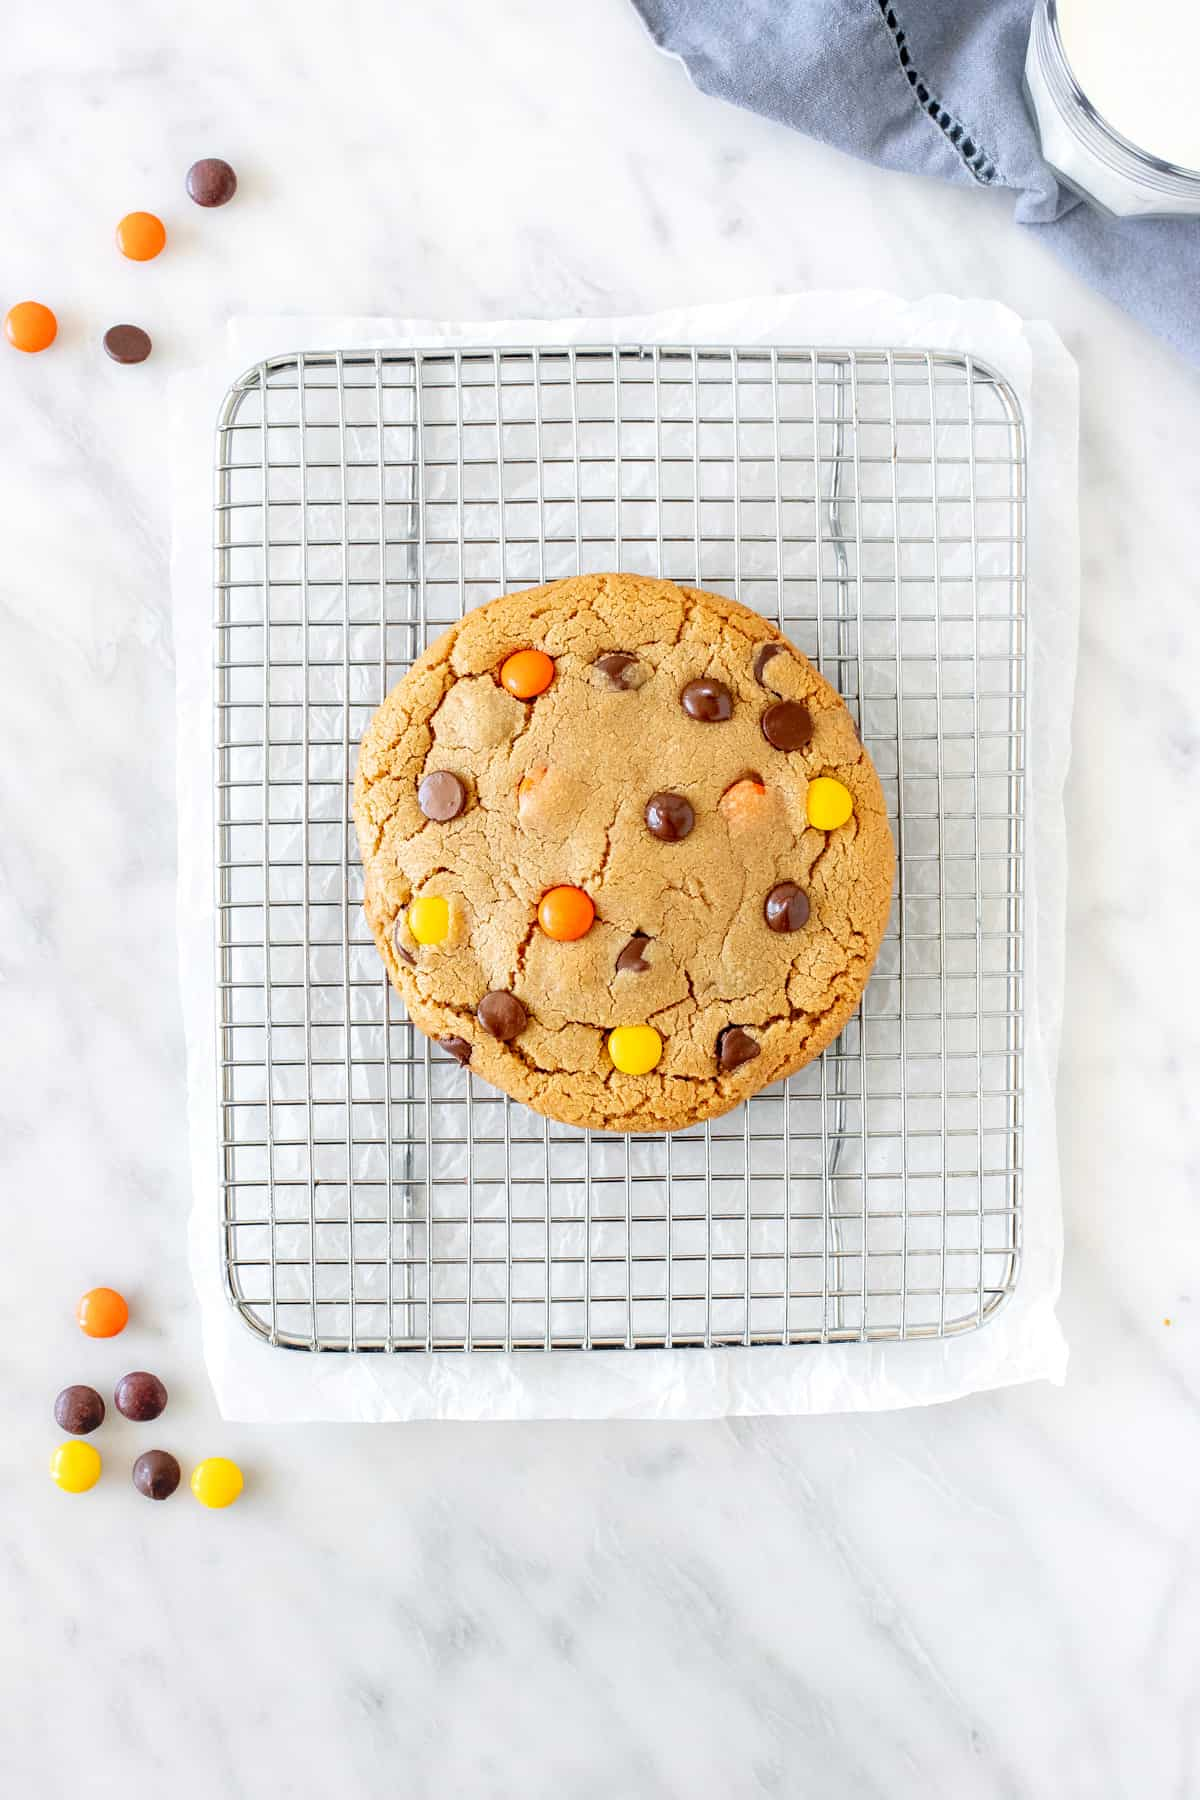 Peanut butter cookie on a cooling rack